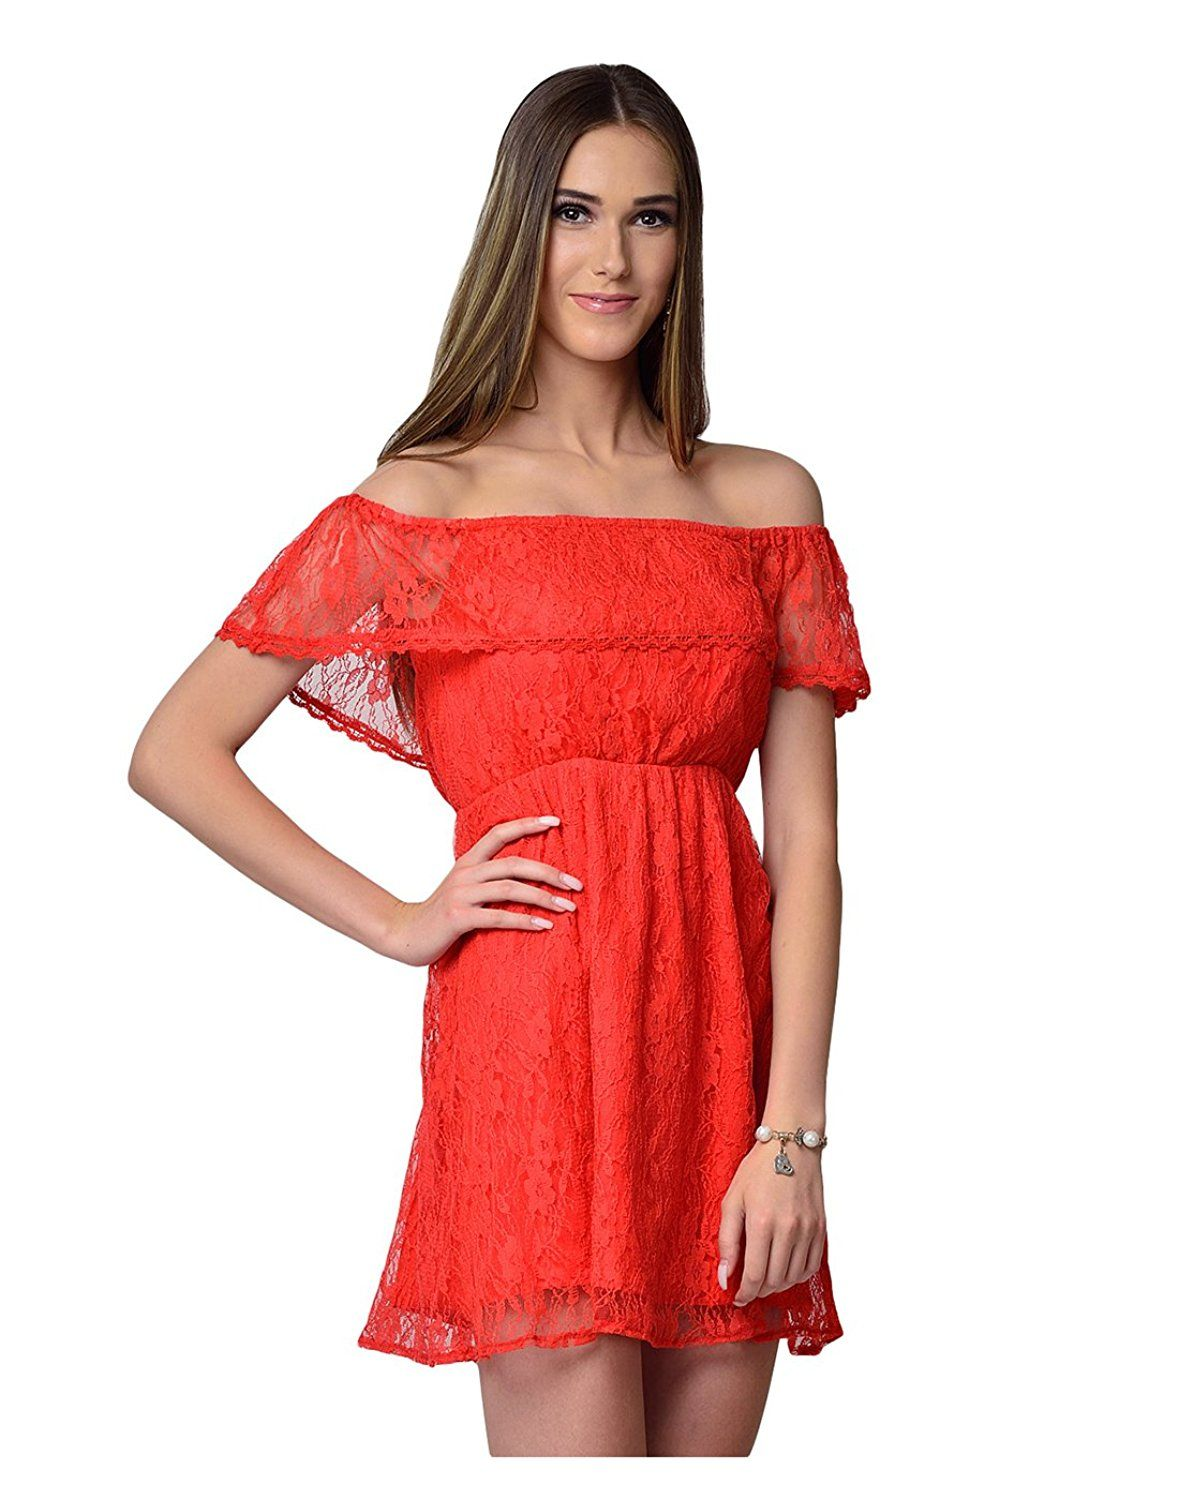 787a6688509 Red sexy sizzling dress for valentine day